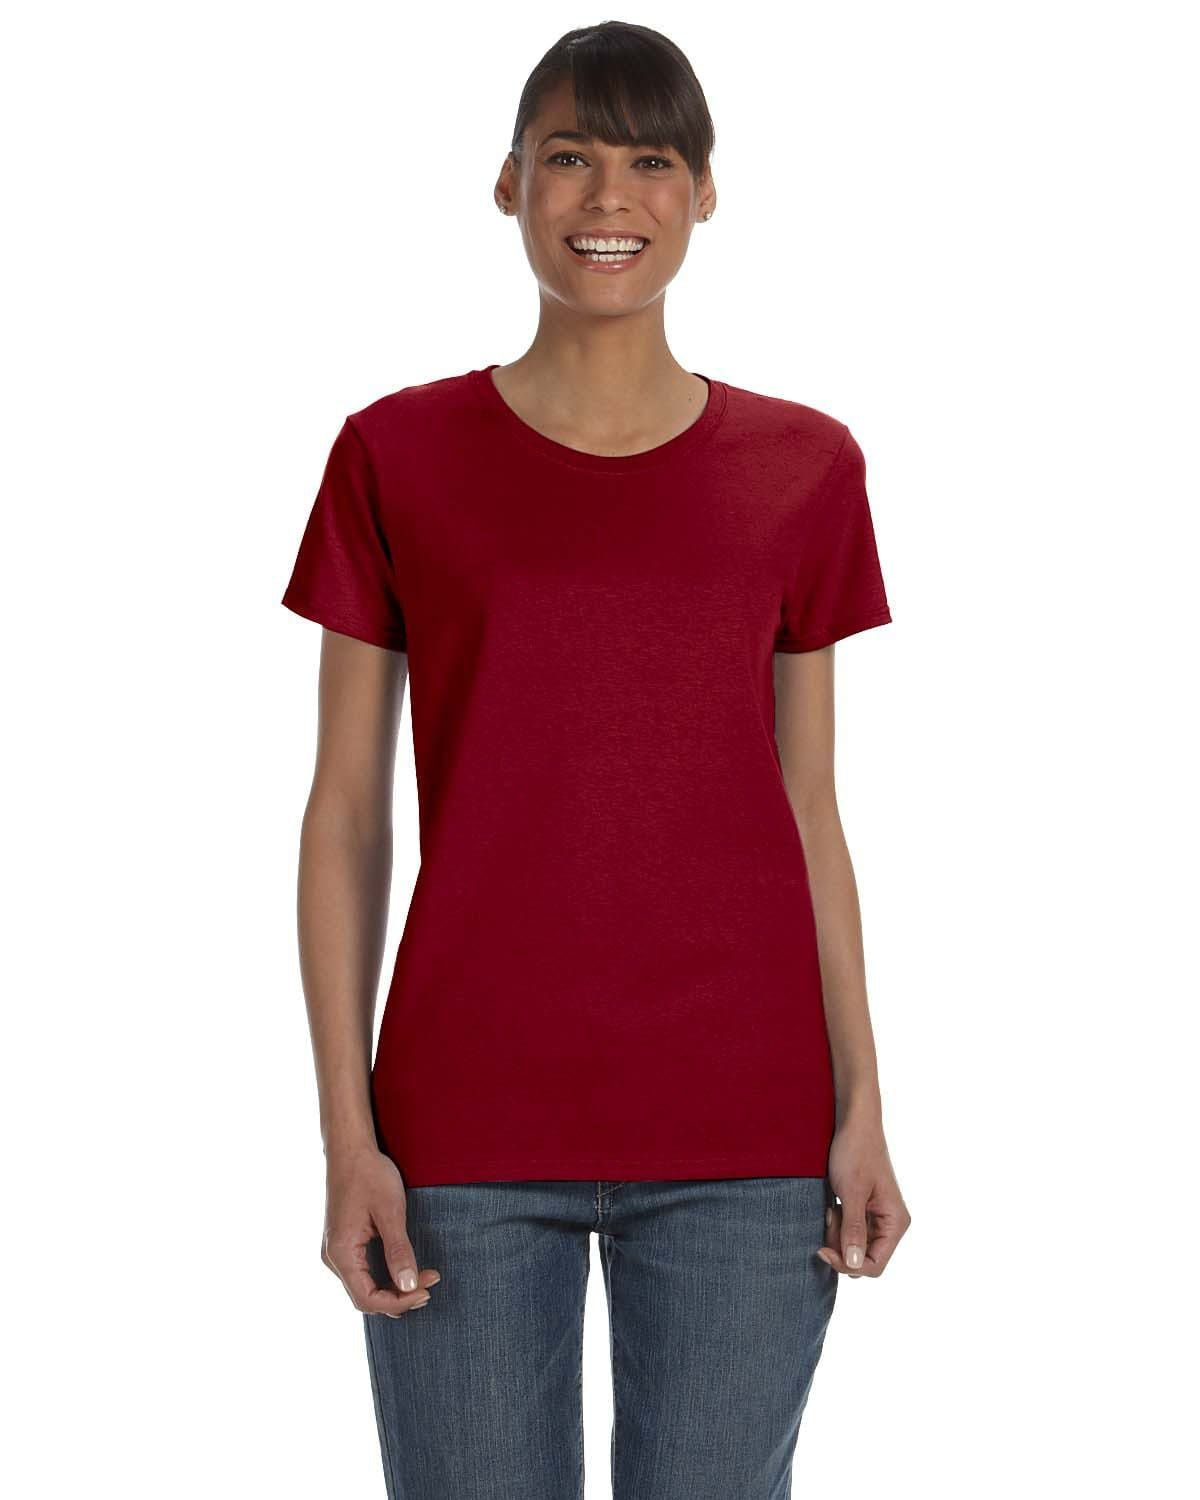 g500l-ladies-heavy-cotton-5-3-oz-t-shirt-small-medium-Small-ANT CHERRY RED-Oasispromos